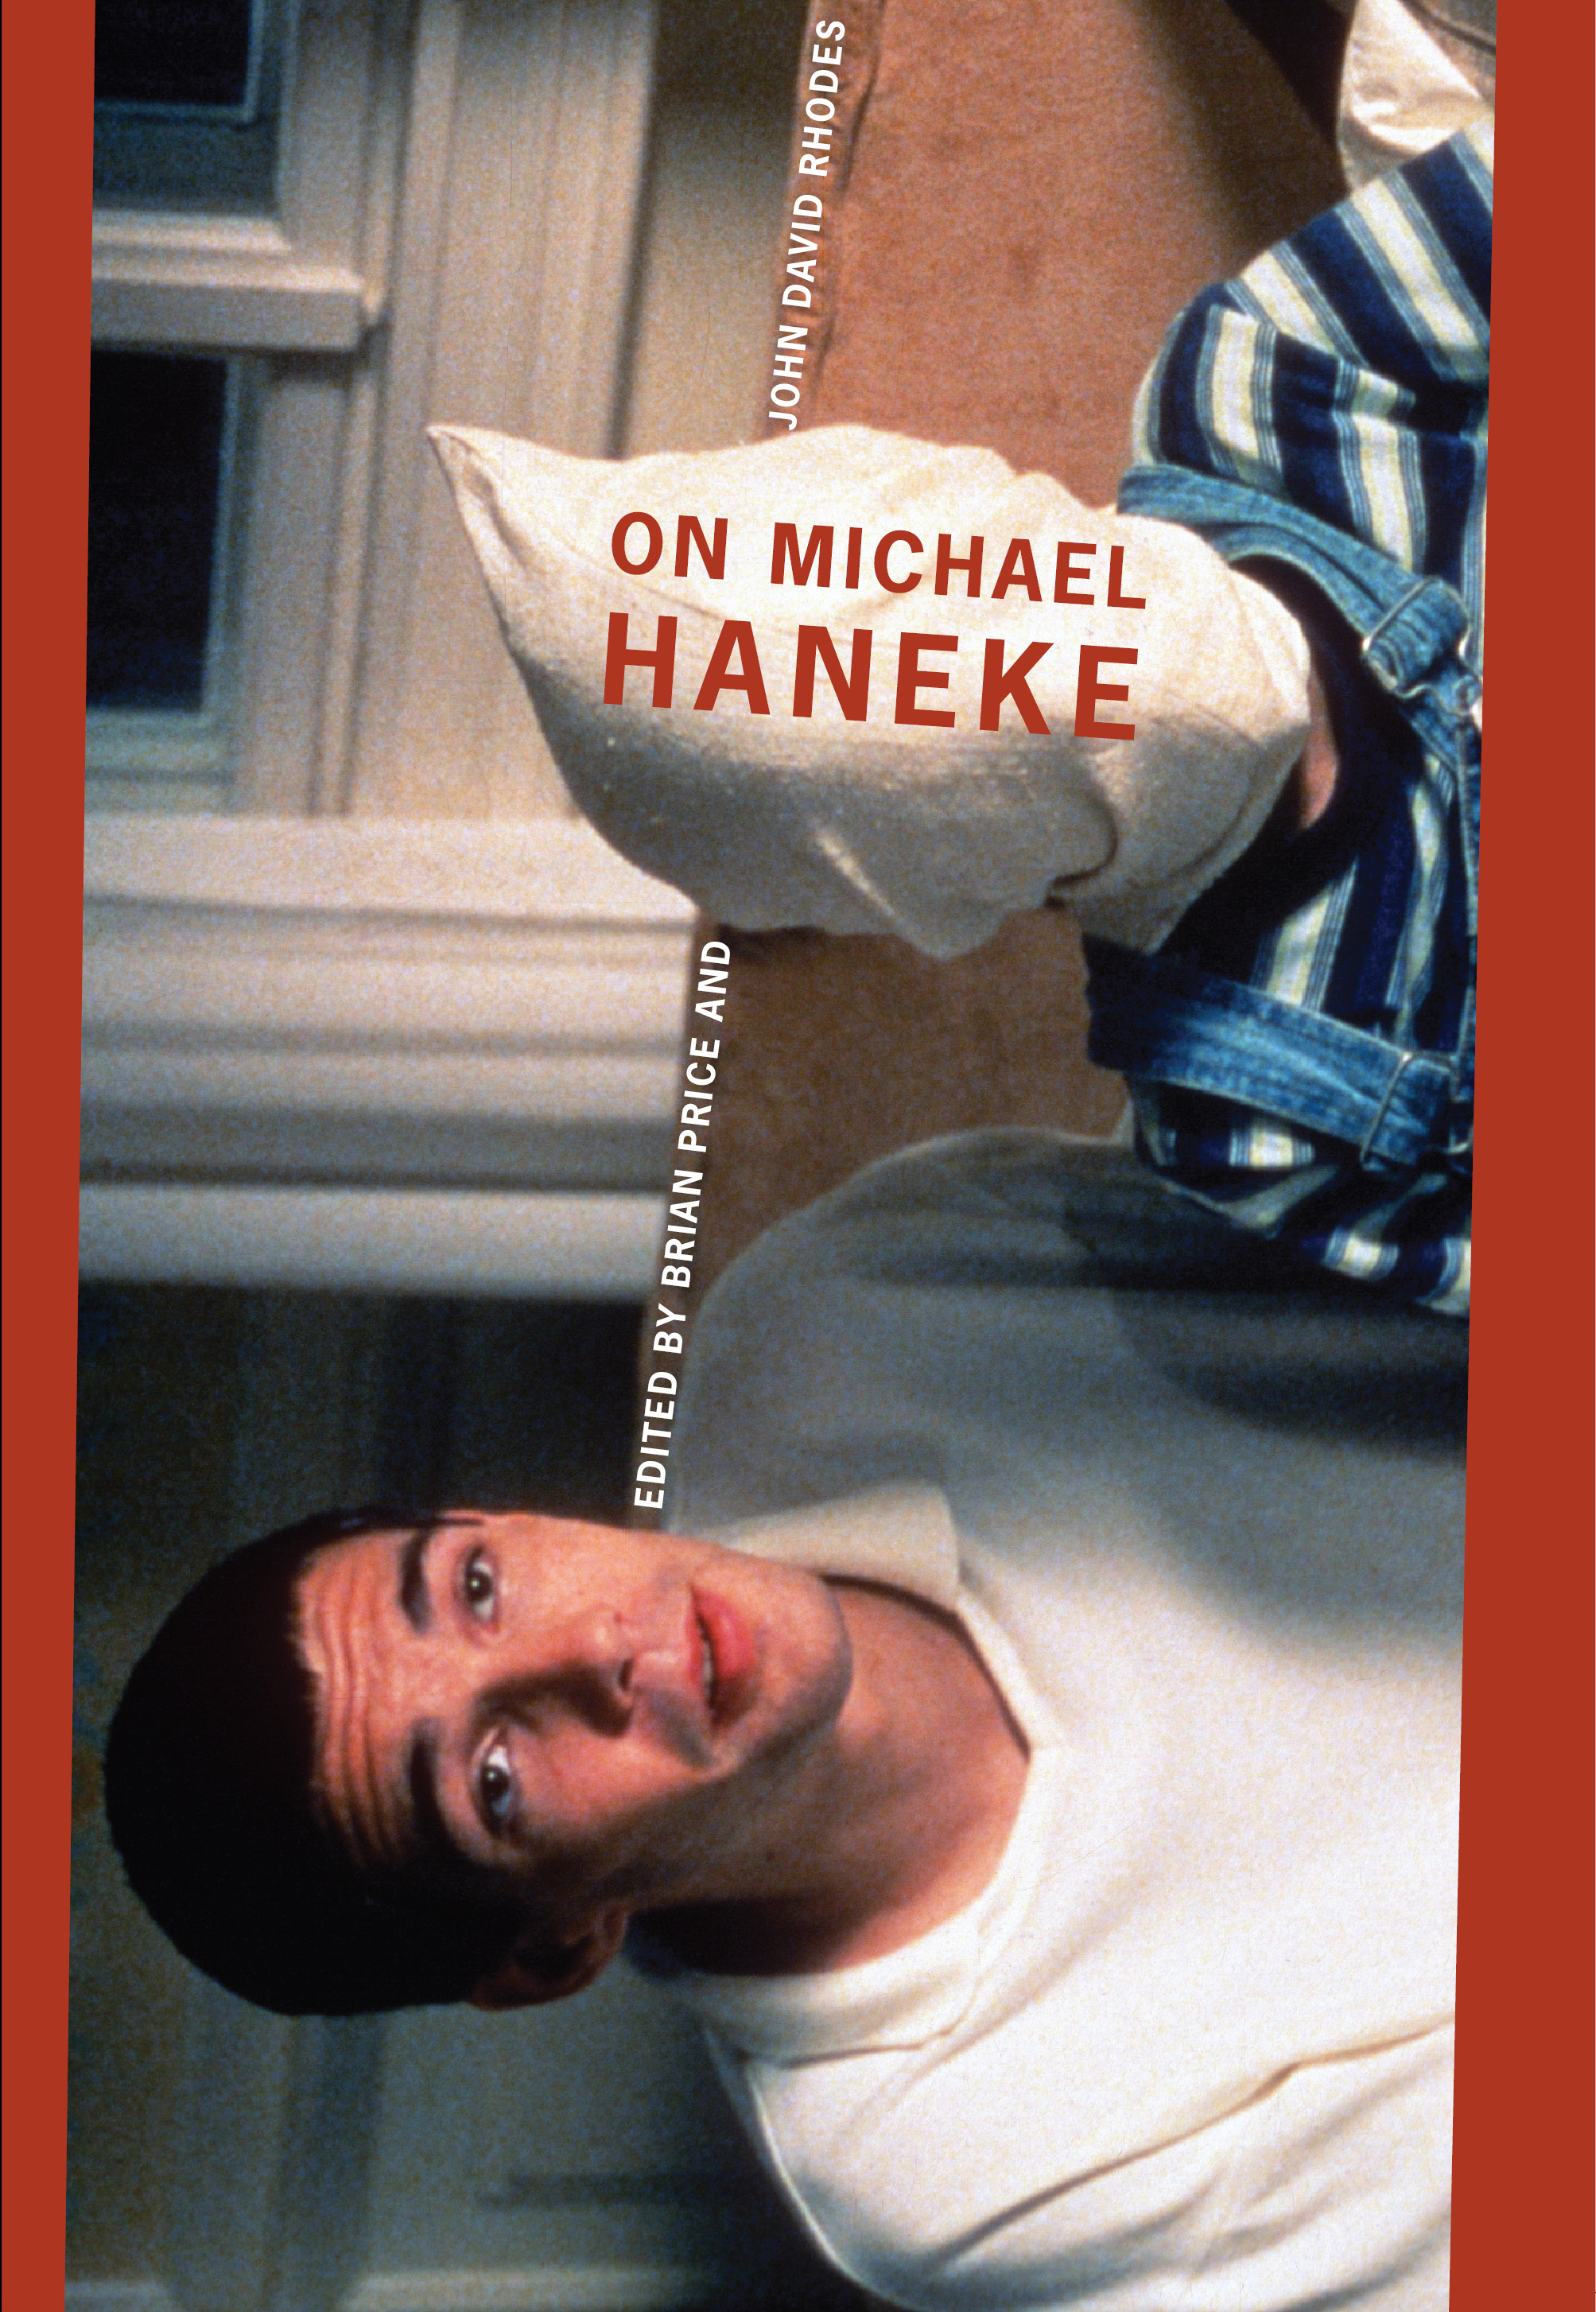 On Michael Haneke